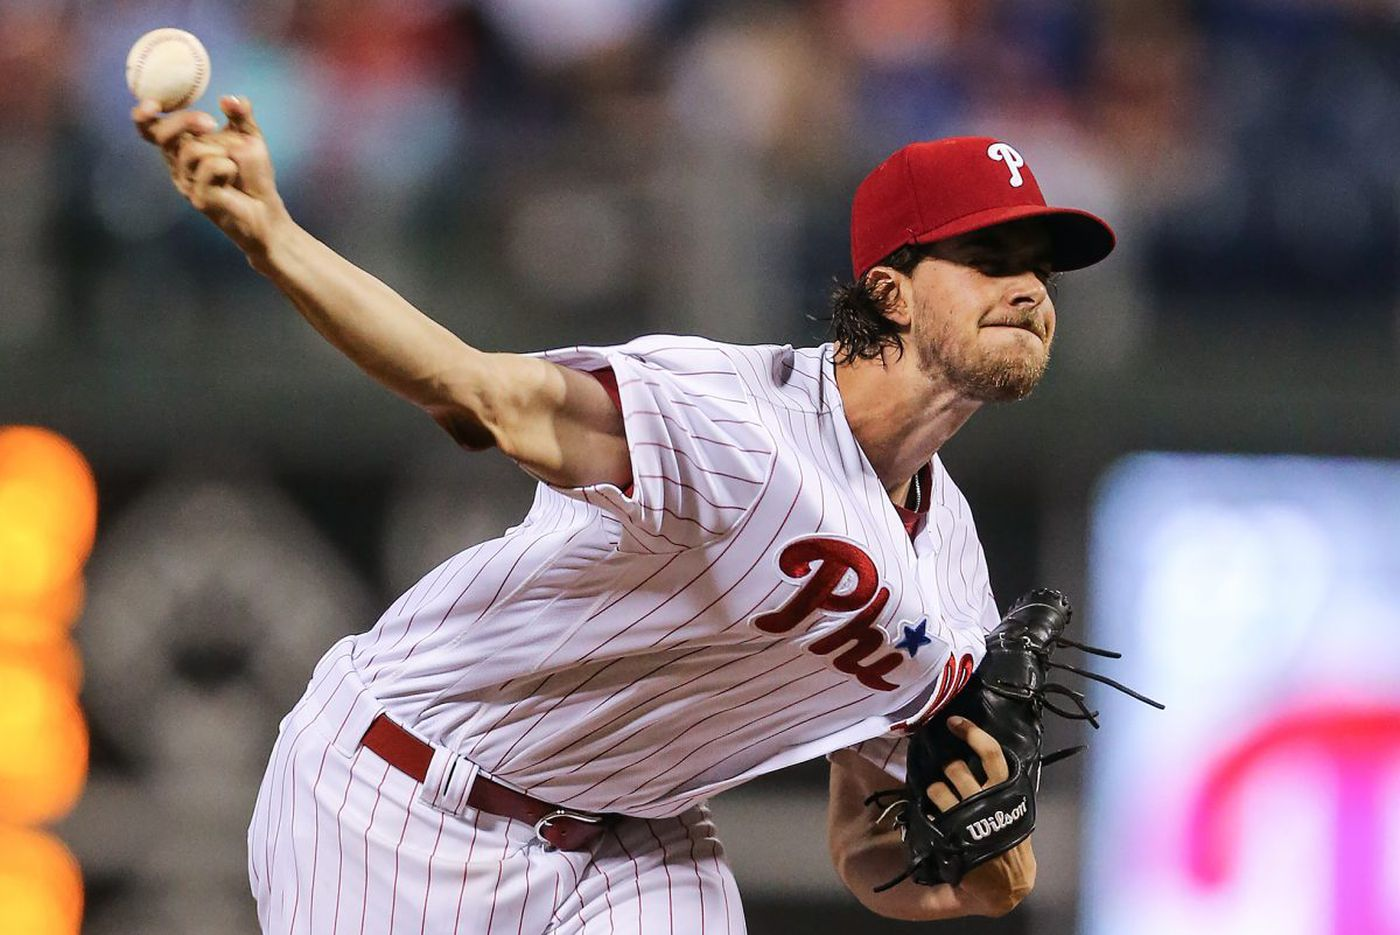 Conditions could be prime for Phillies, Aaron Nola to pursue long-term contract | Matt Gelb